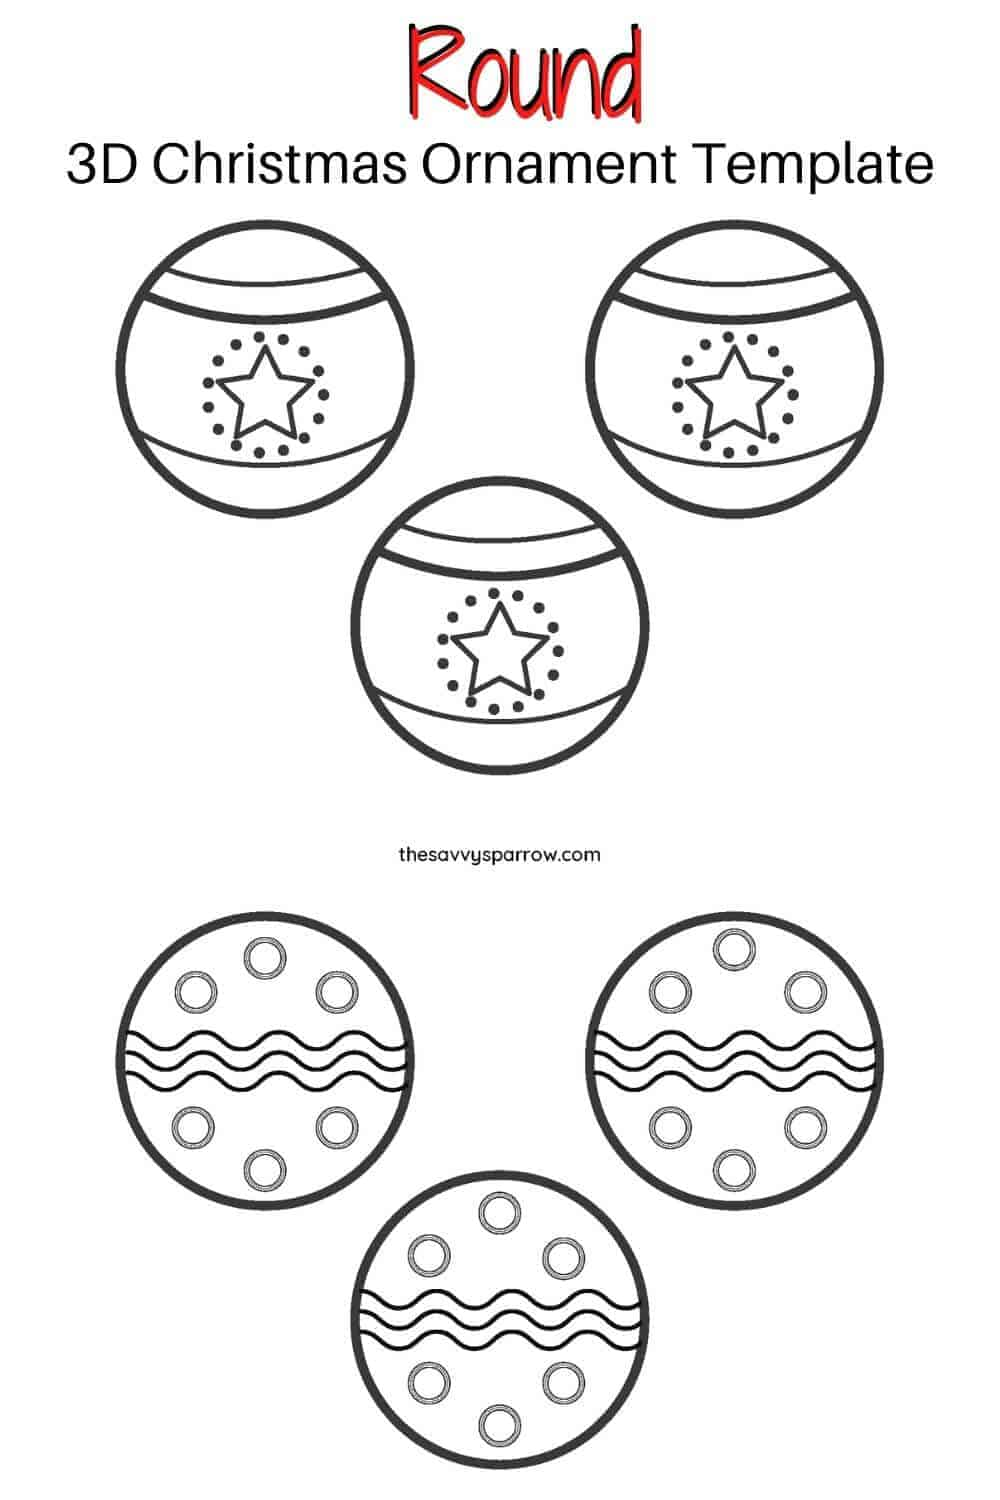 round printable Christmas ornaments template